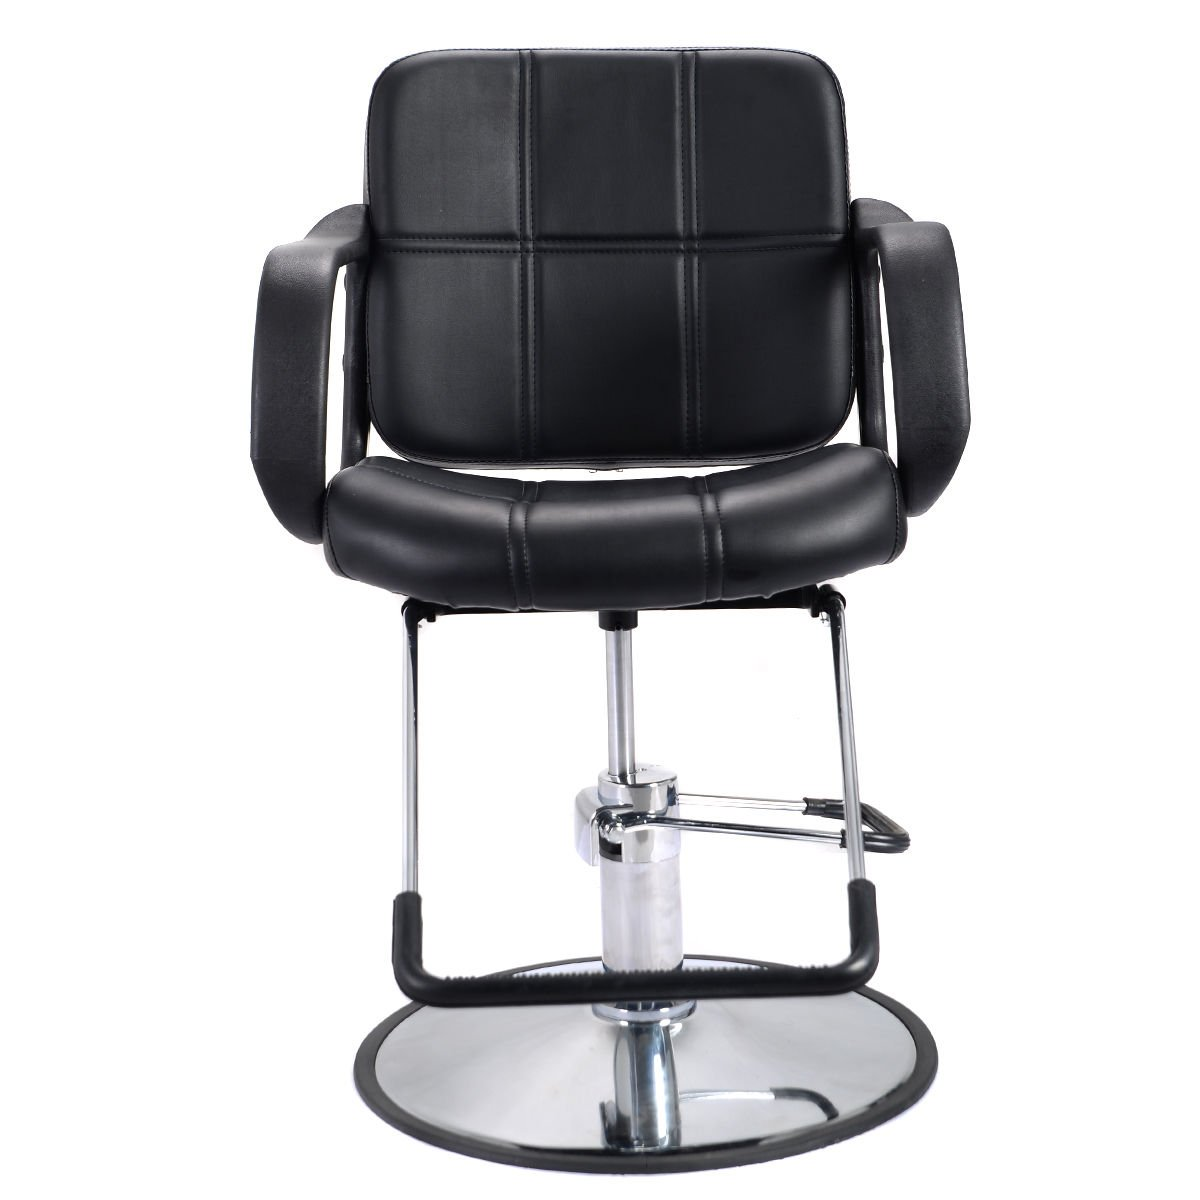 amazoncom giantex classic hydraulic barber chair salon beauty spa hair styling equipment beauty